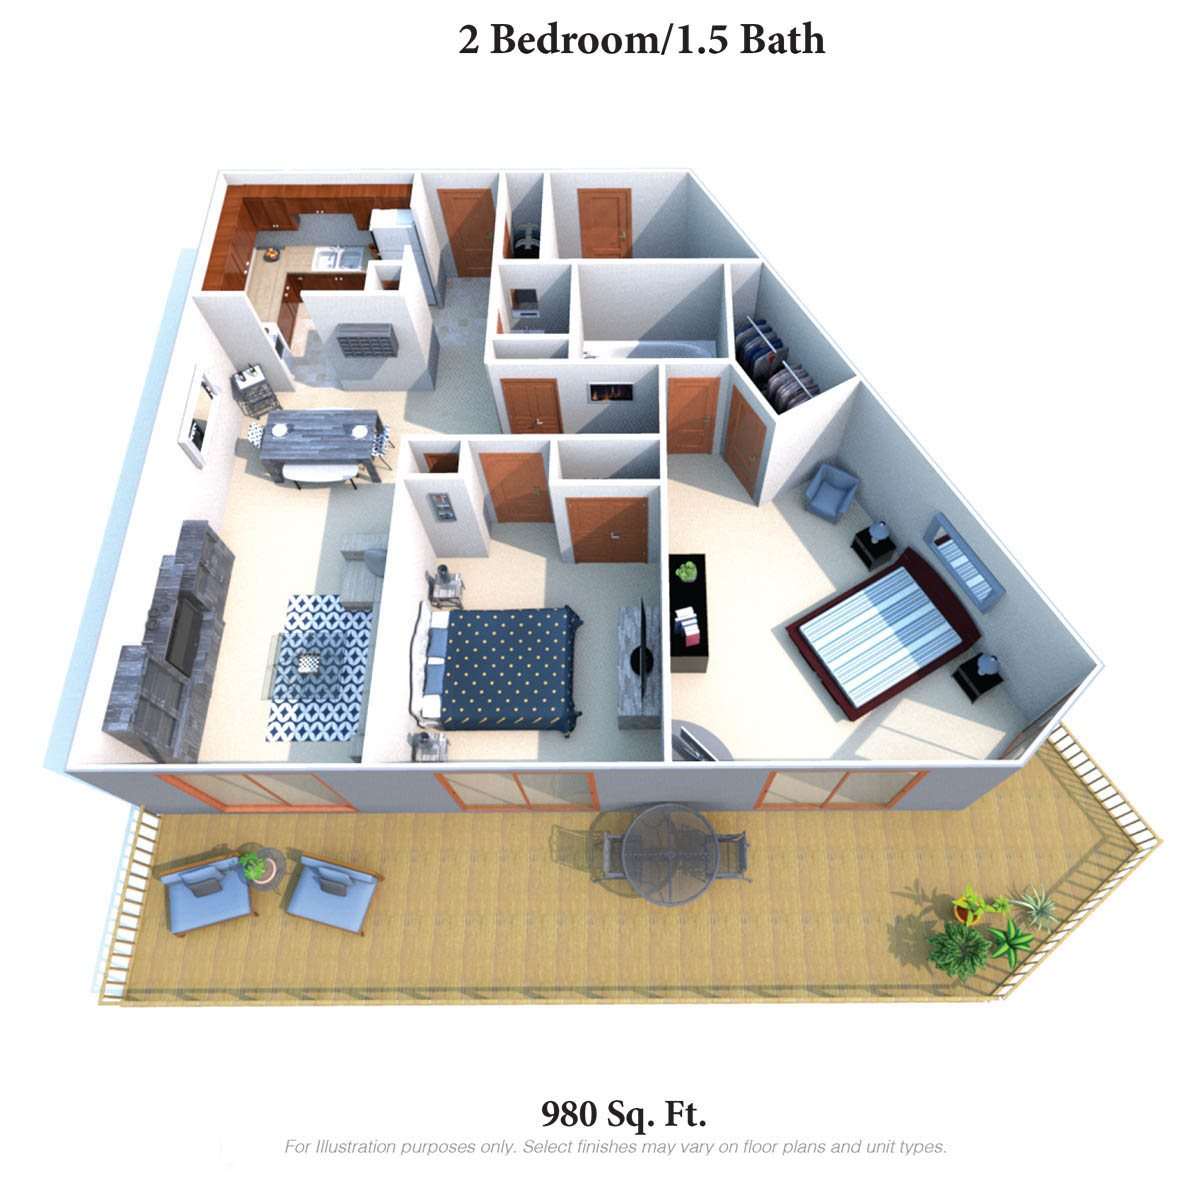 Two Bedroom 1.5 Bath Floor Plan 2